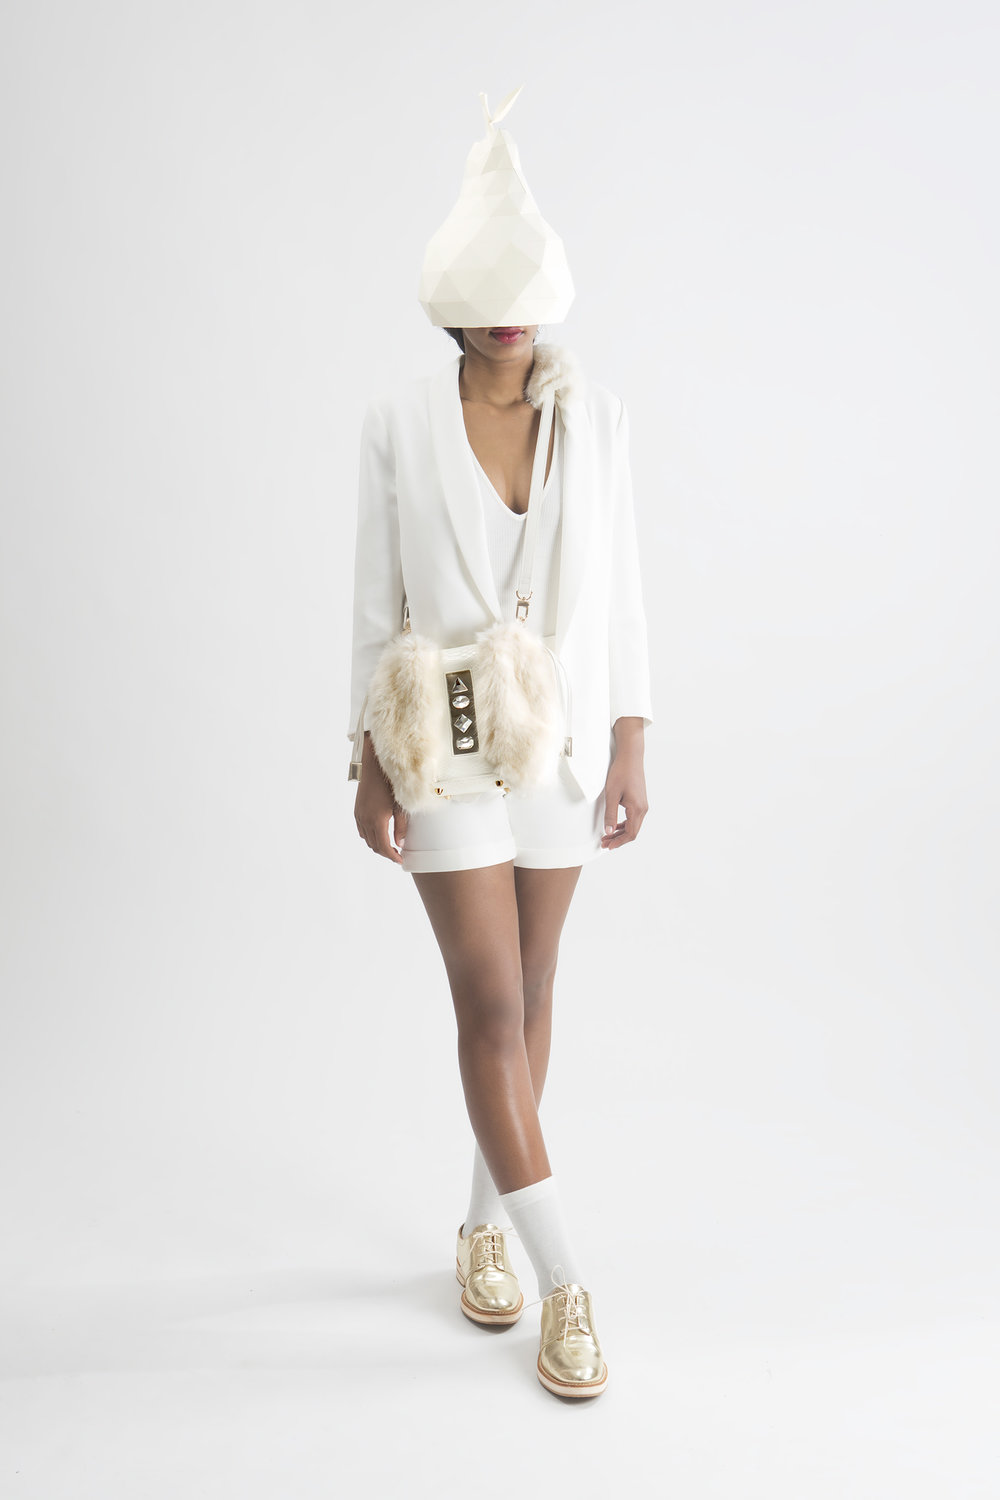 FruitenVeg-NAMI bag-never-fur-vegan-leather-fake-artificial-fur-white-rhinestones-small-cross-body-designer-handbag-nyc